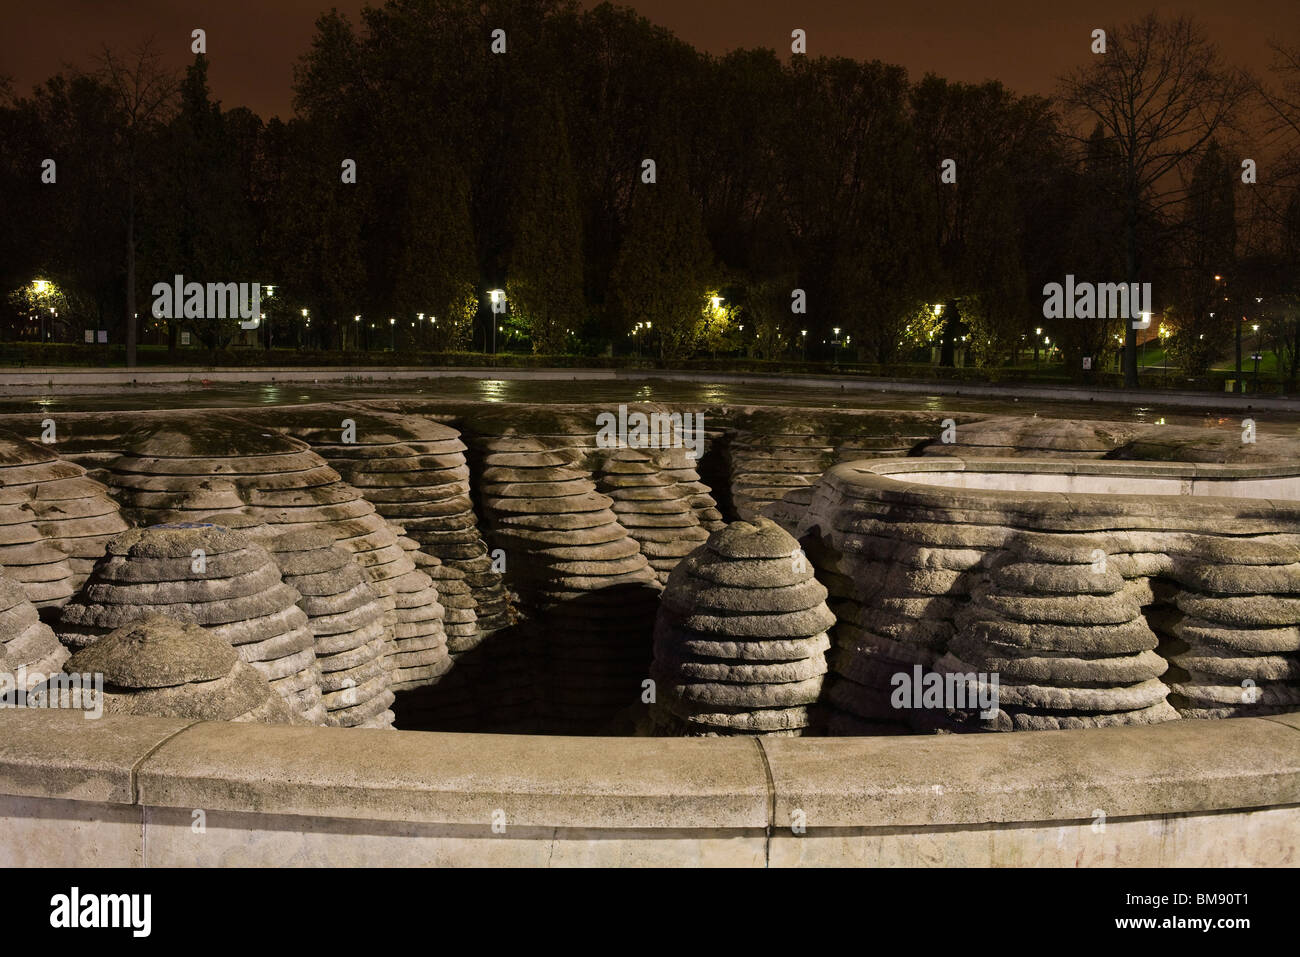 La Fontaine Canyoneaustrate, Parc de Bercy, Paris, France - Stock Image